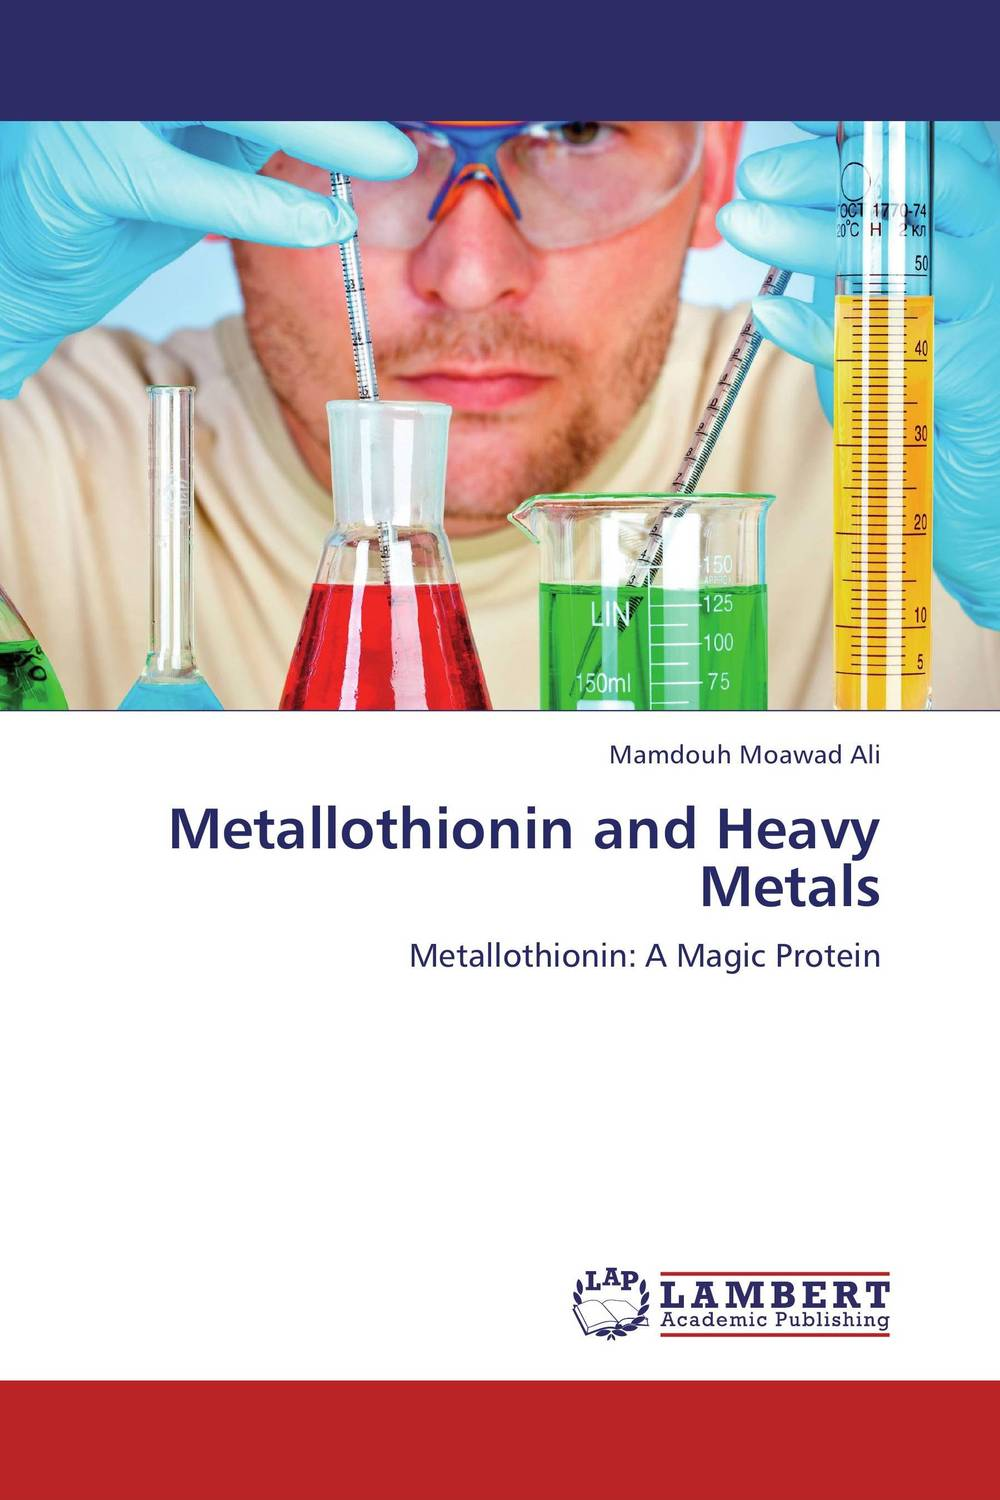 Metallothionin and Heavy Metals found in brooklyn